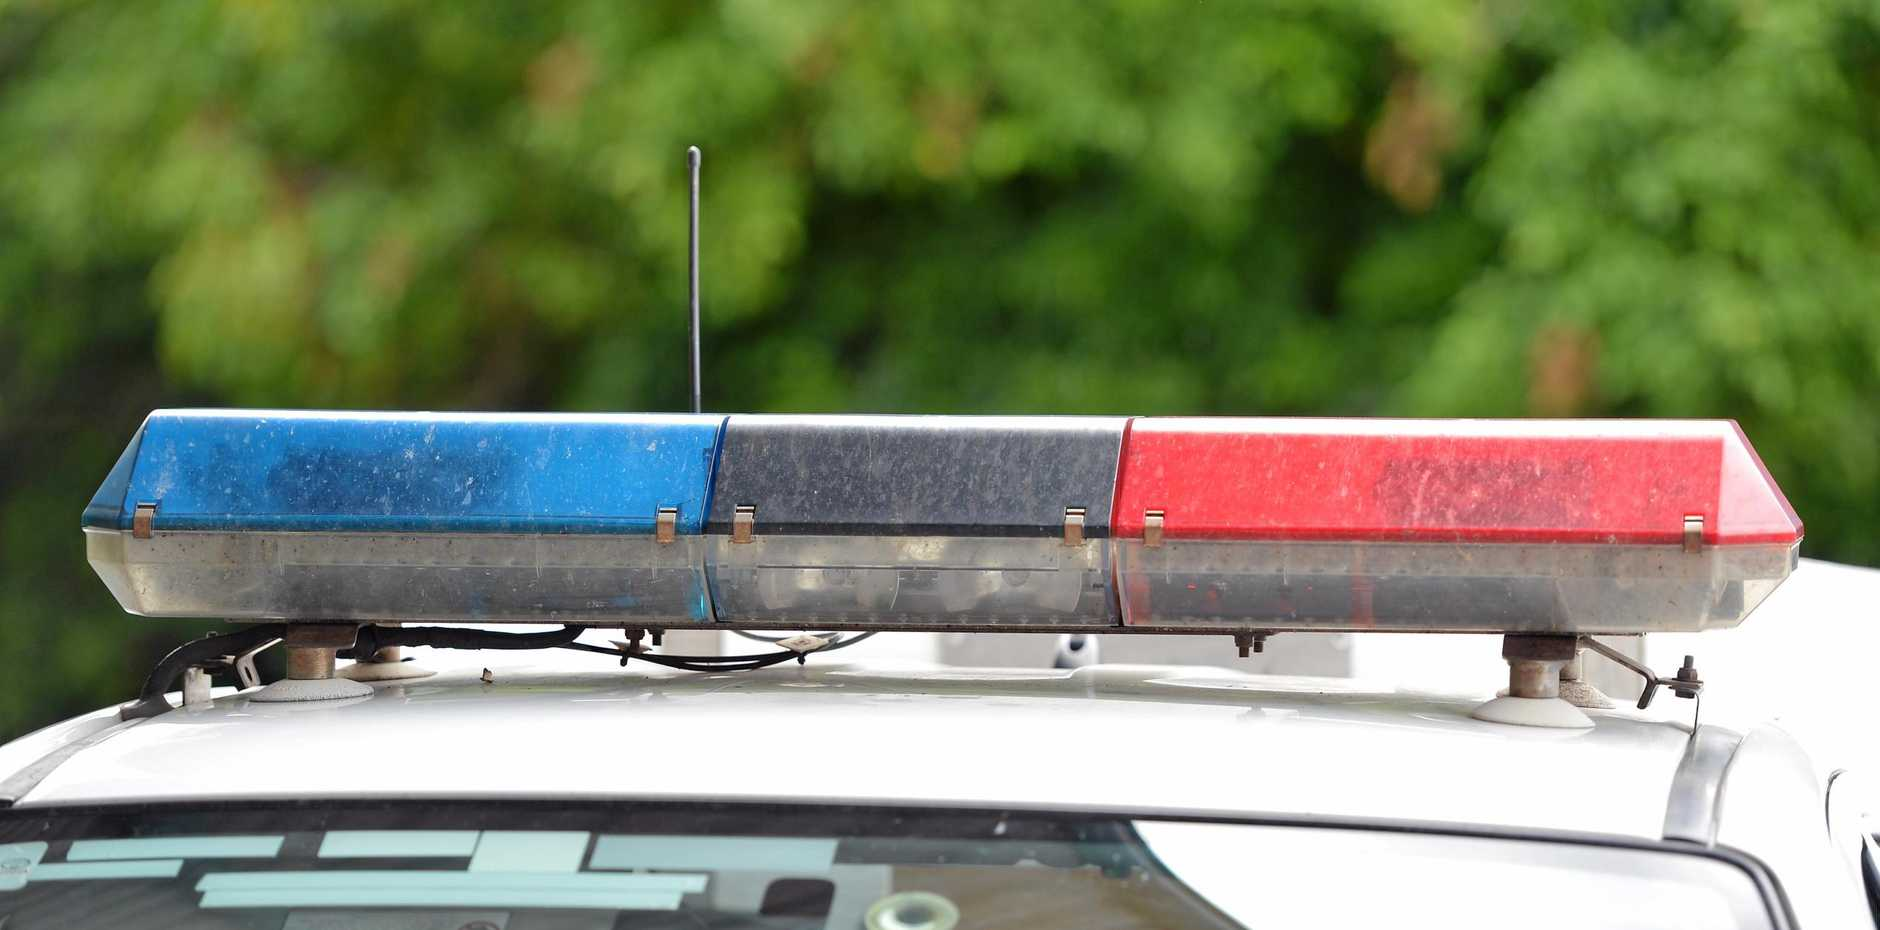 Four teens are being questioned over the alleged theft.